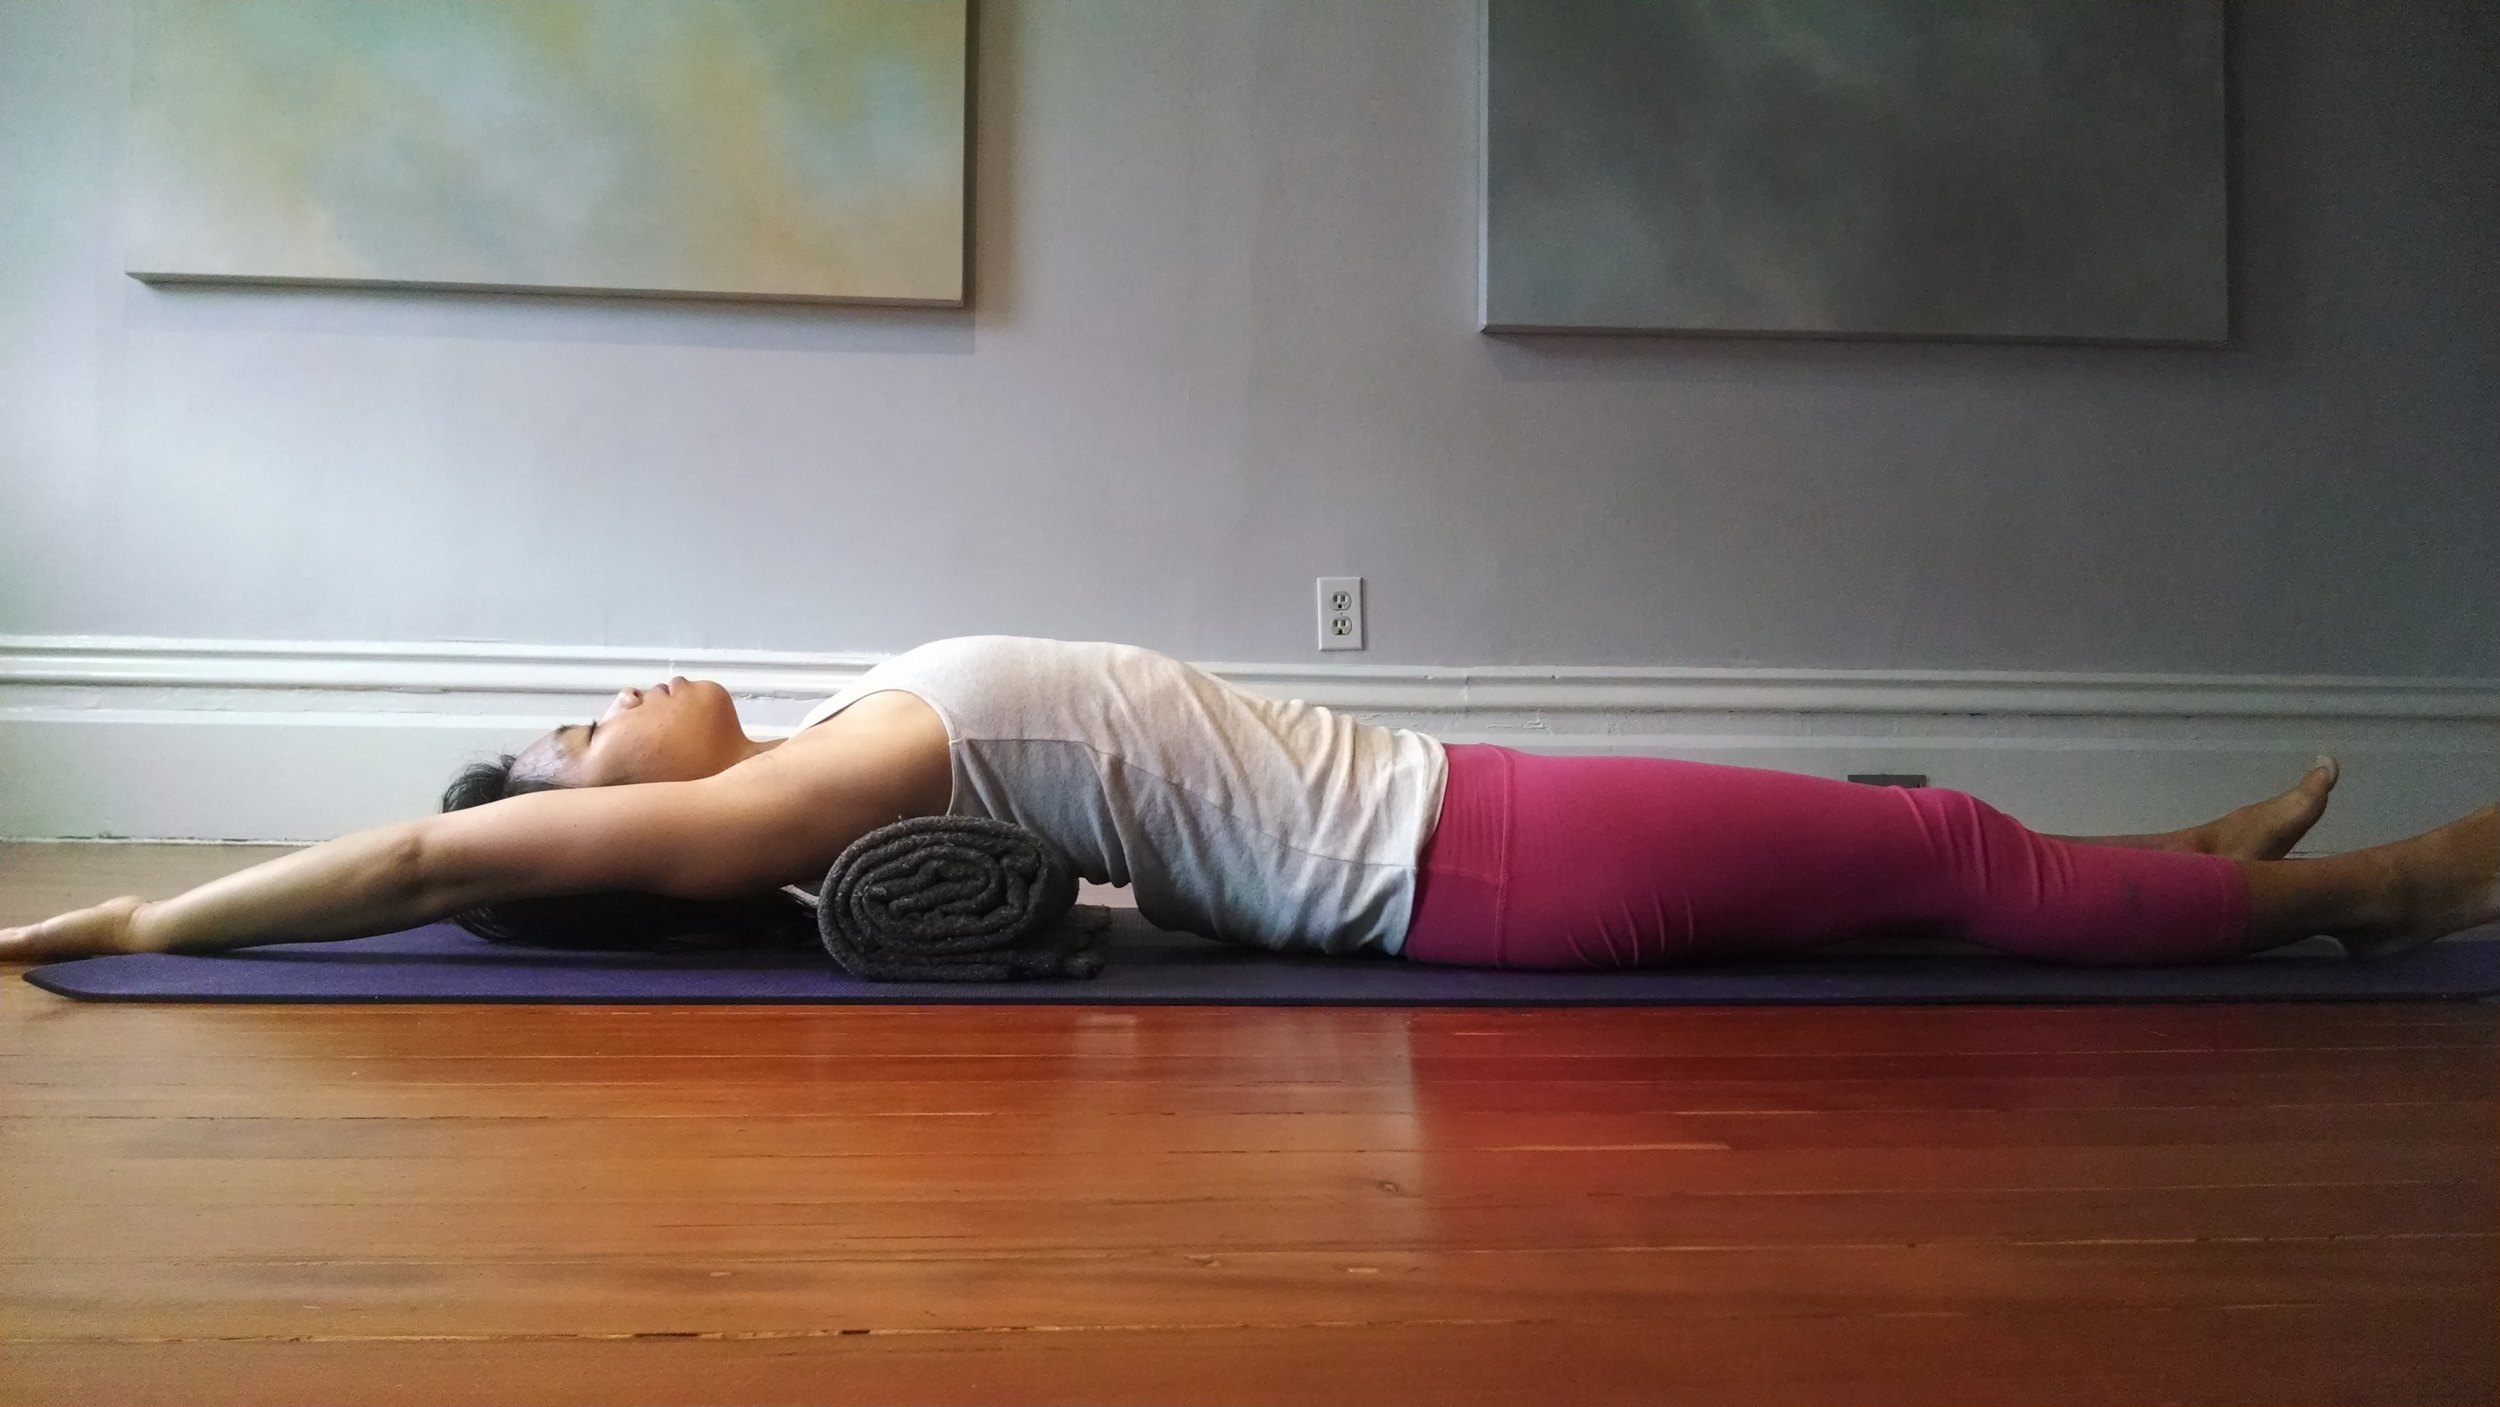 Upper back and chest opener. Feel free to bend the knees and place both feet on the floor if you have lower back tension. You can also place the arms down by your side.